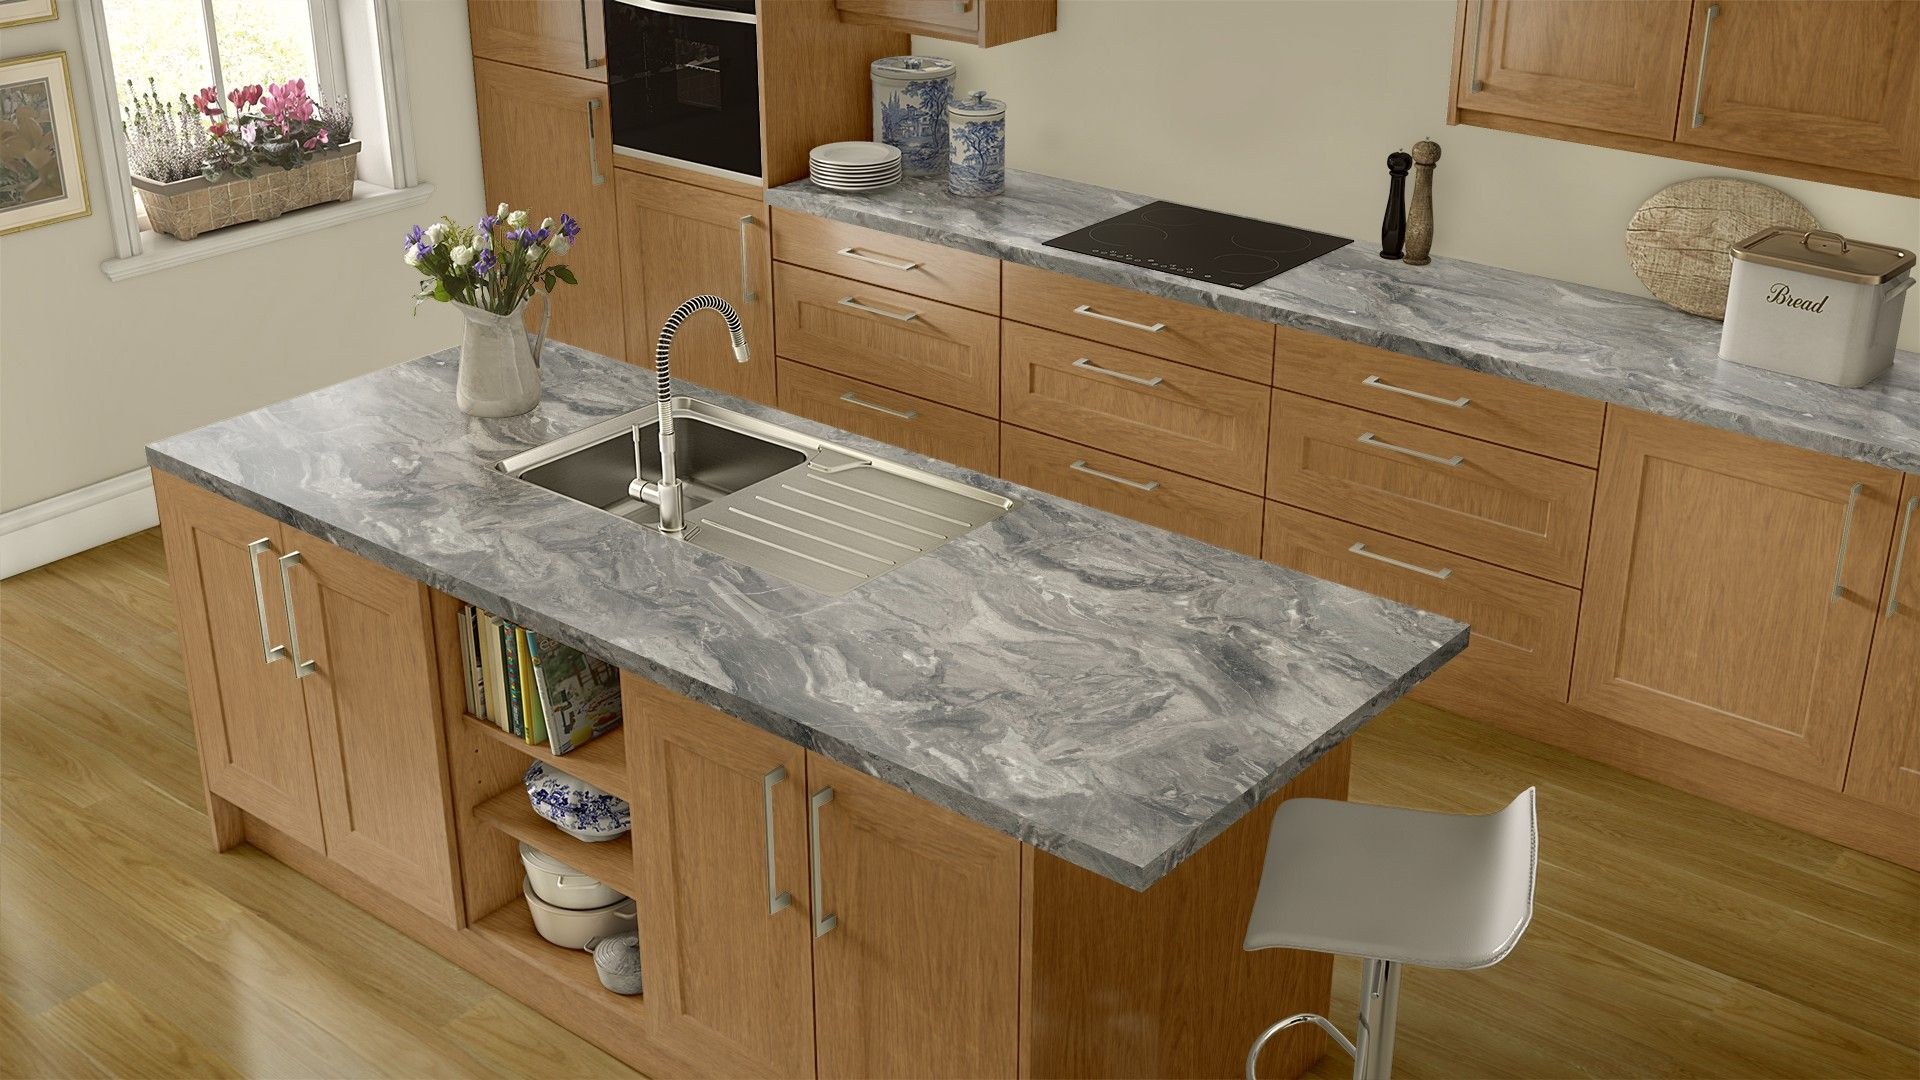 Lario Glaze Kithen Upgrade Kitchen Kitchen Cabinets